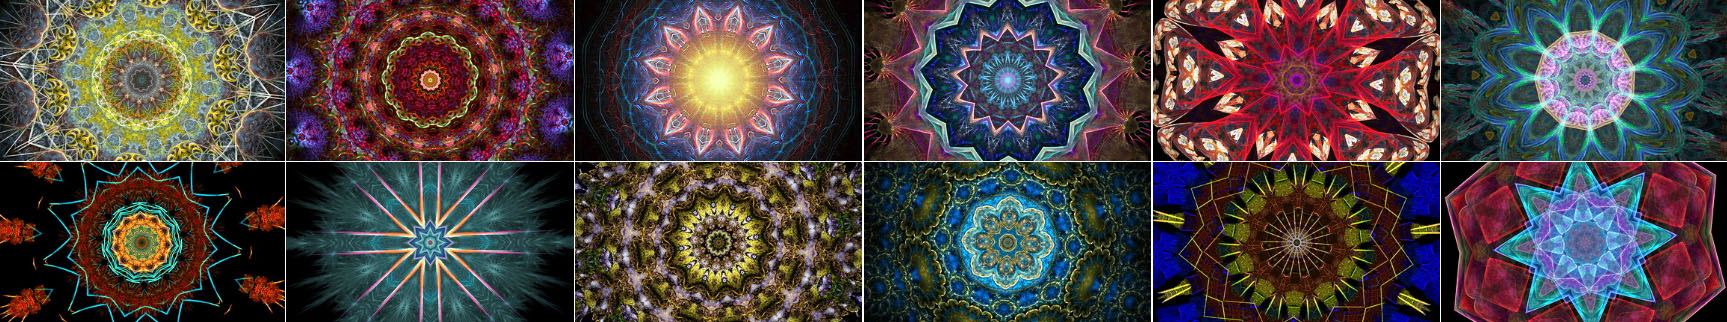 Kaleidoscope DVD Screenshots